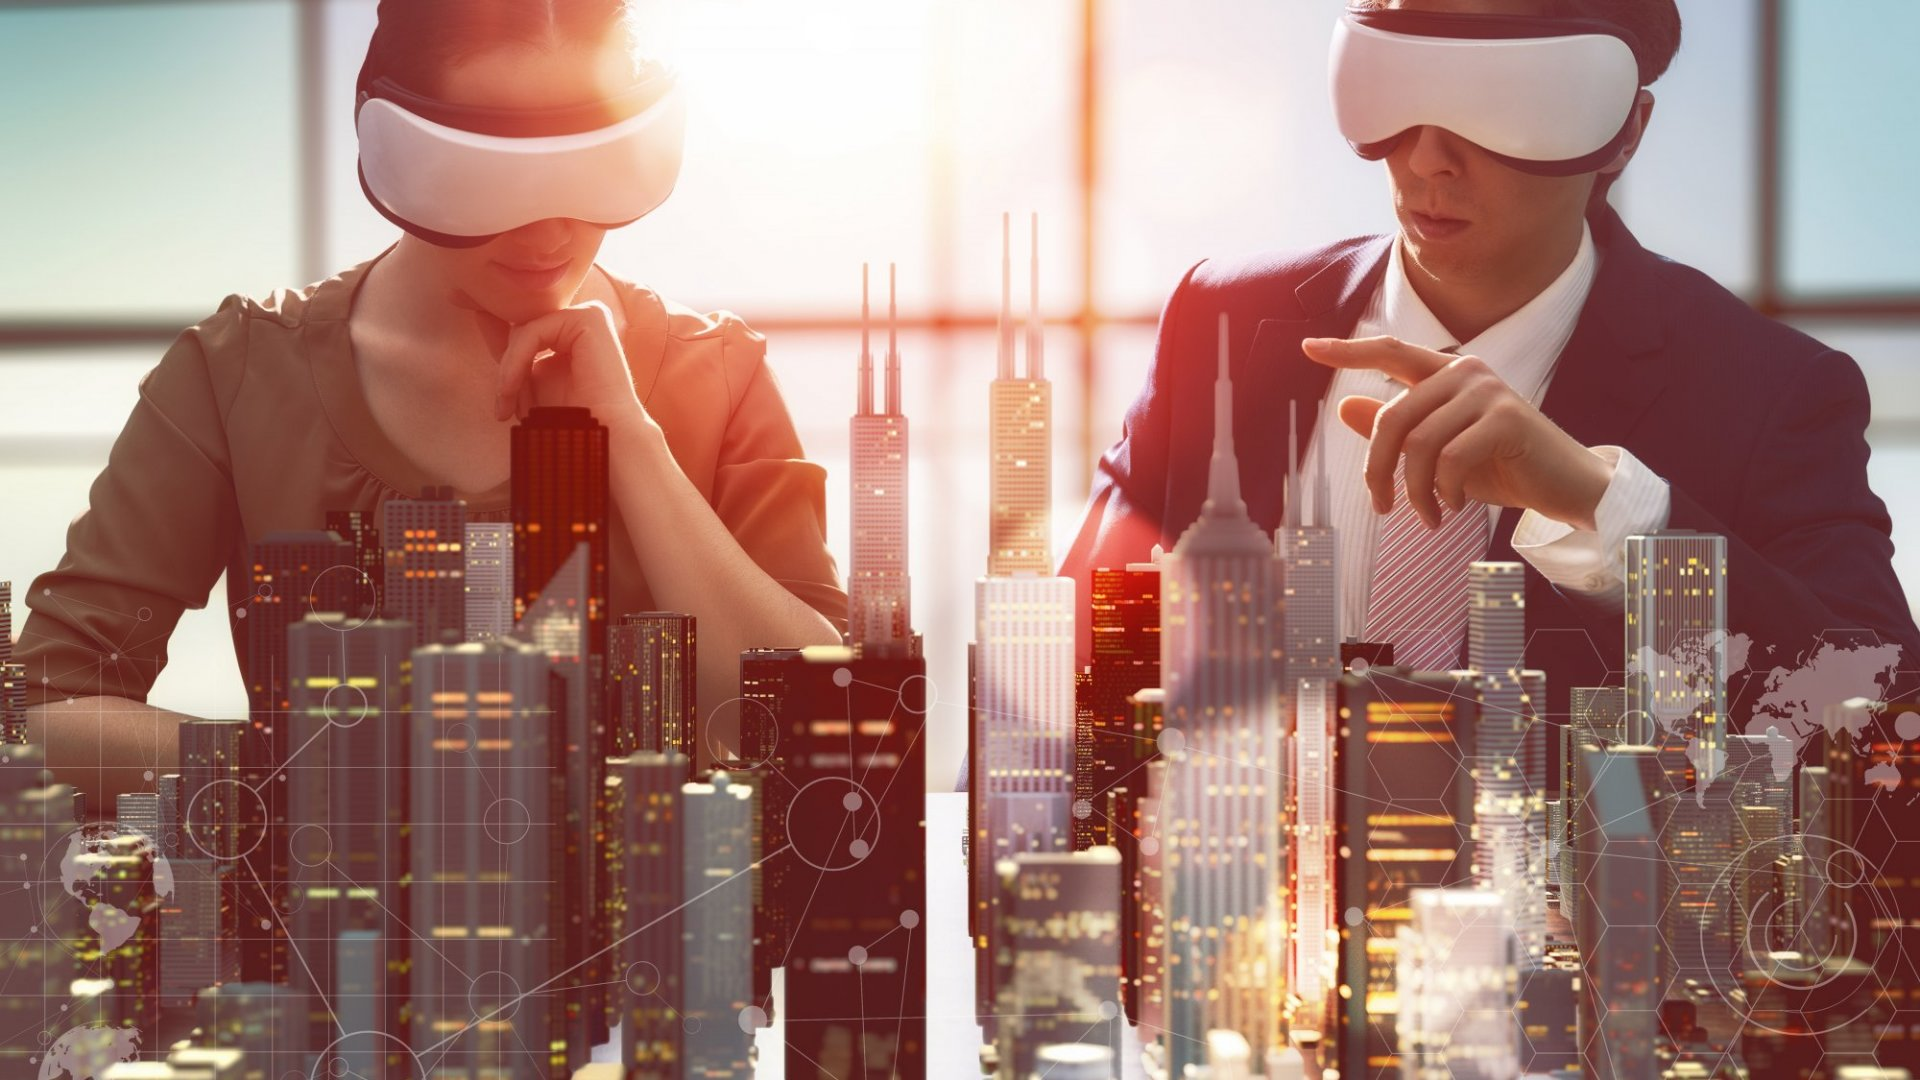 Offering great VR experiences is one way to connect with customers.